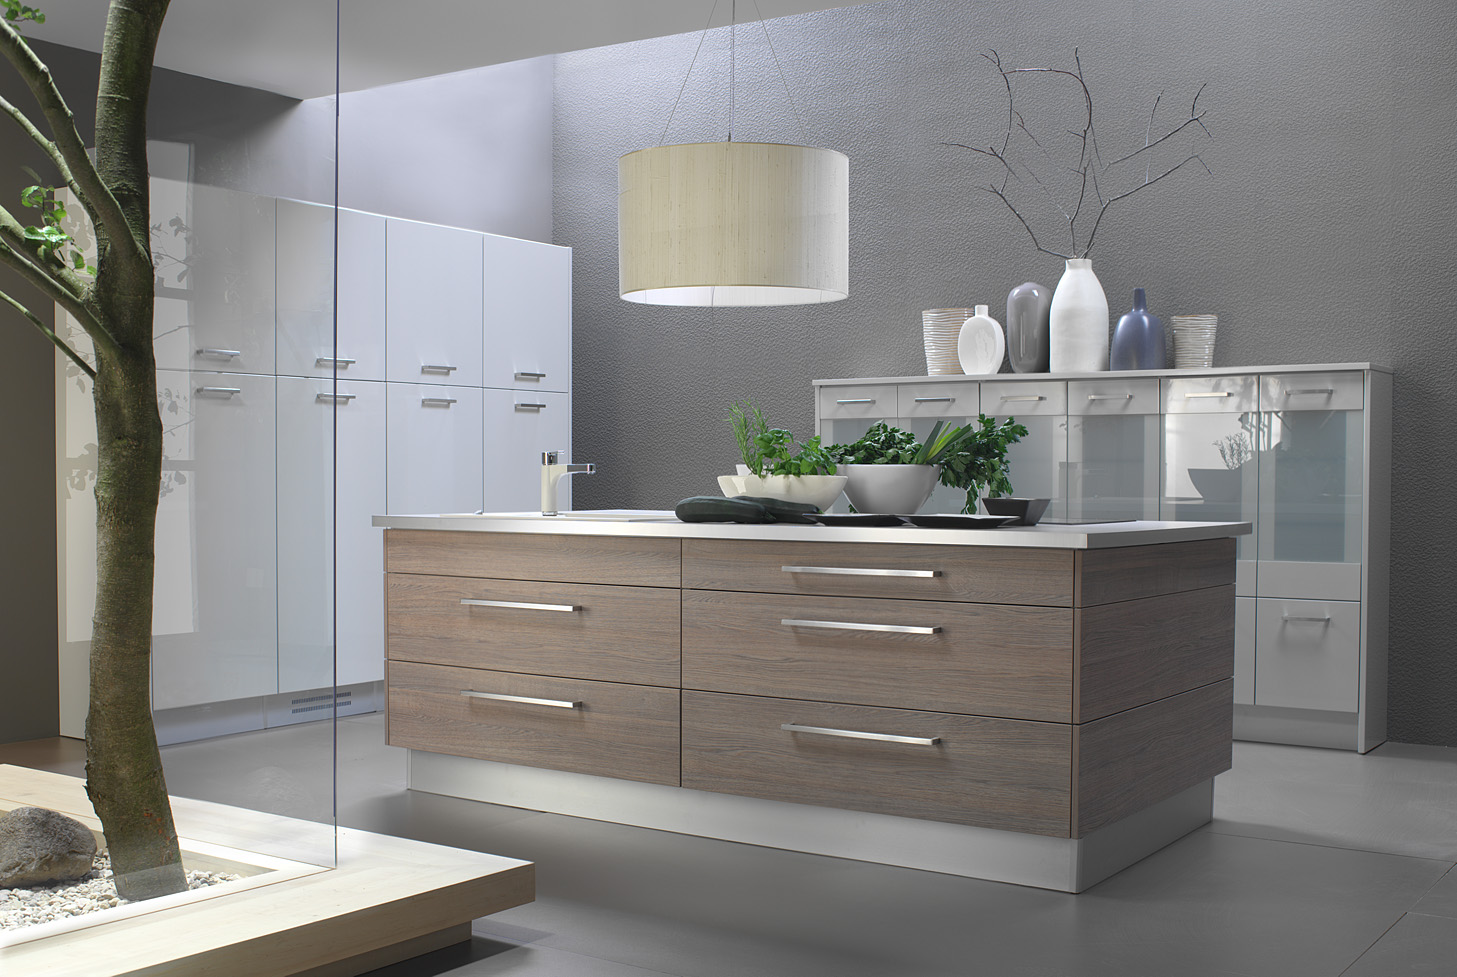 Laminate Kitchen Cabinets Design Ideas Czytamwwannie39s